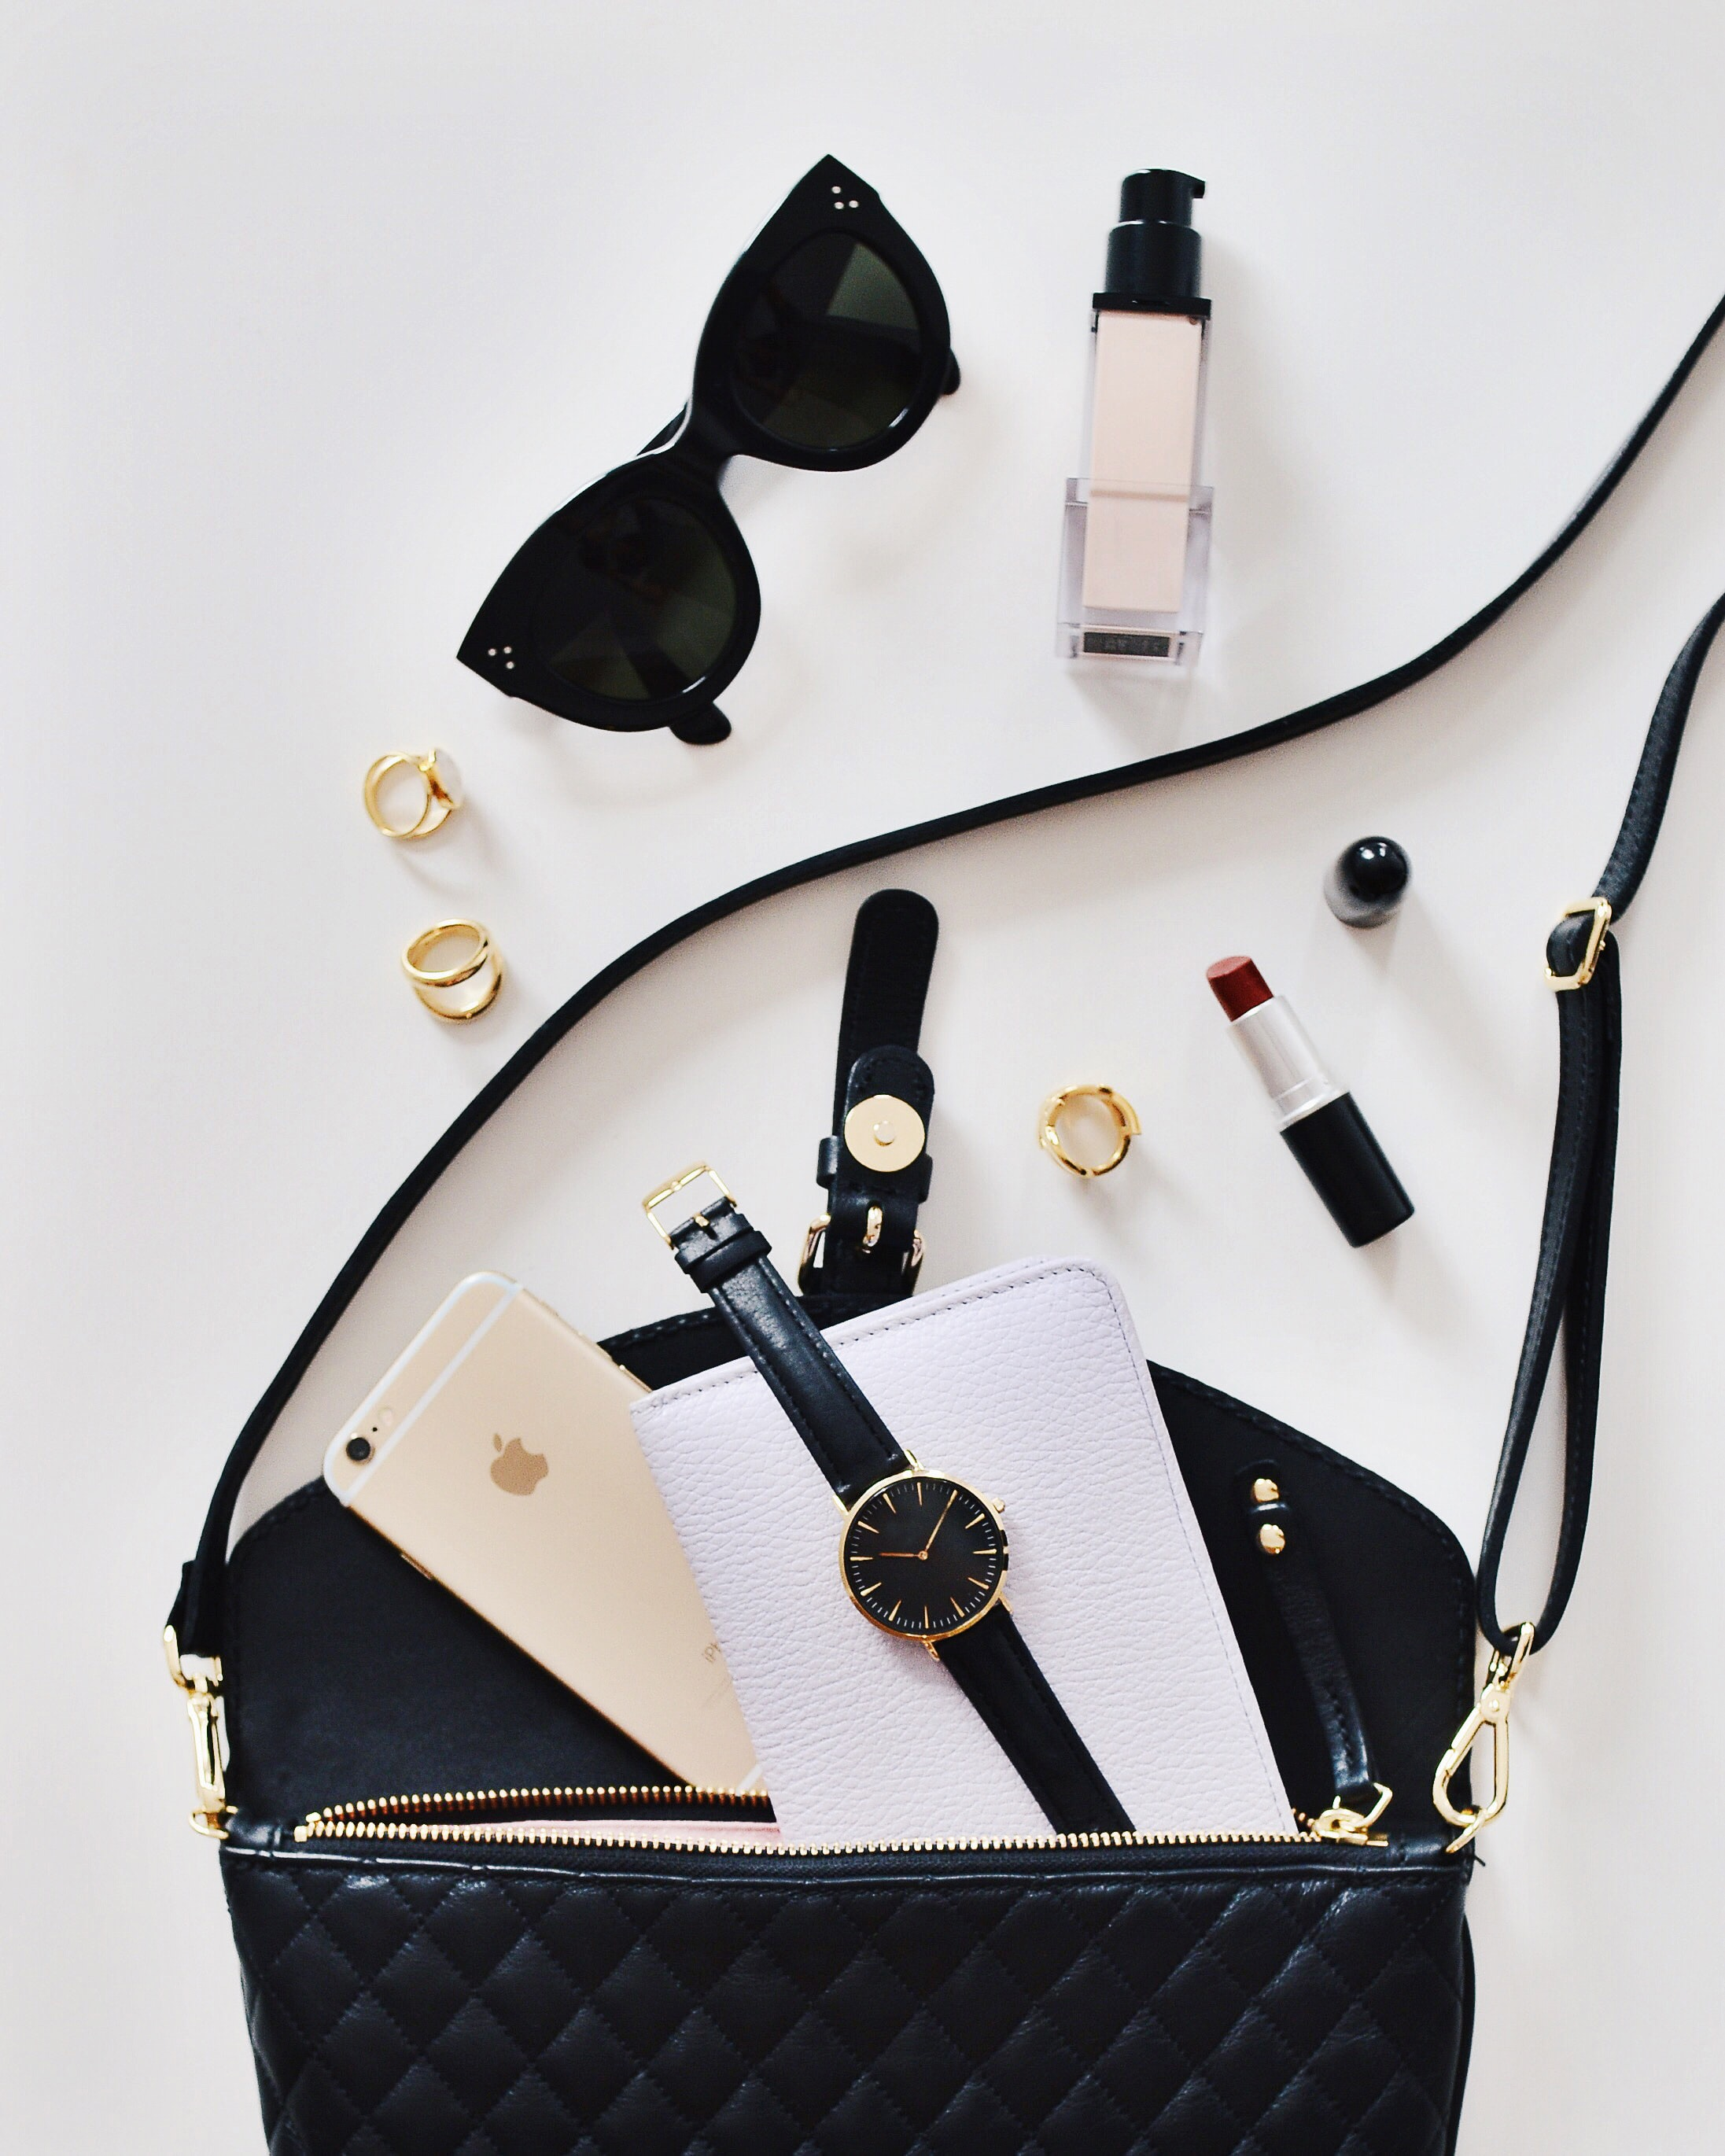 The contents of a woman's purse emptied on a white surface